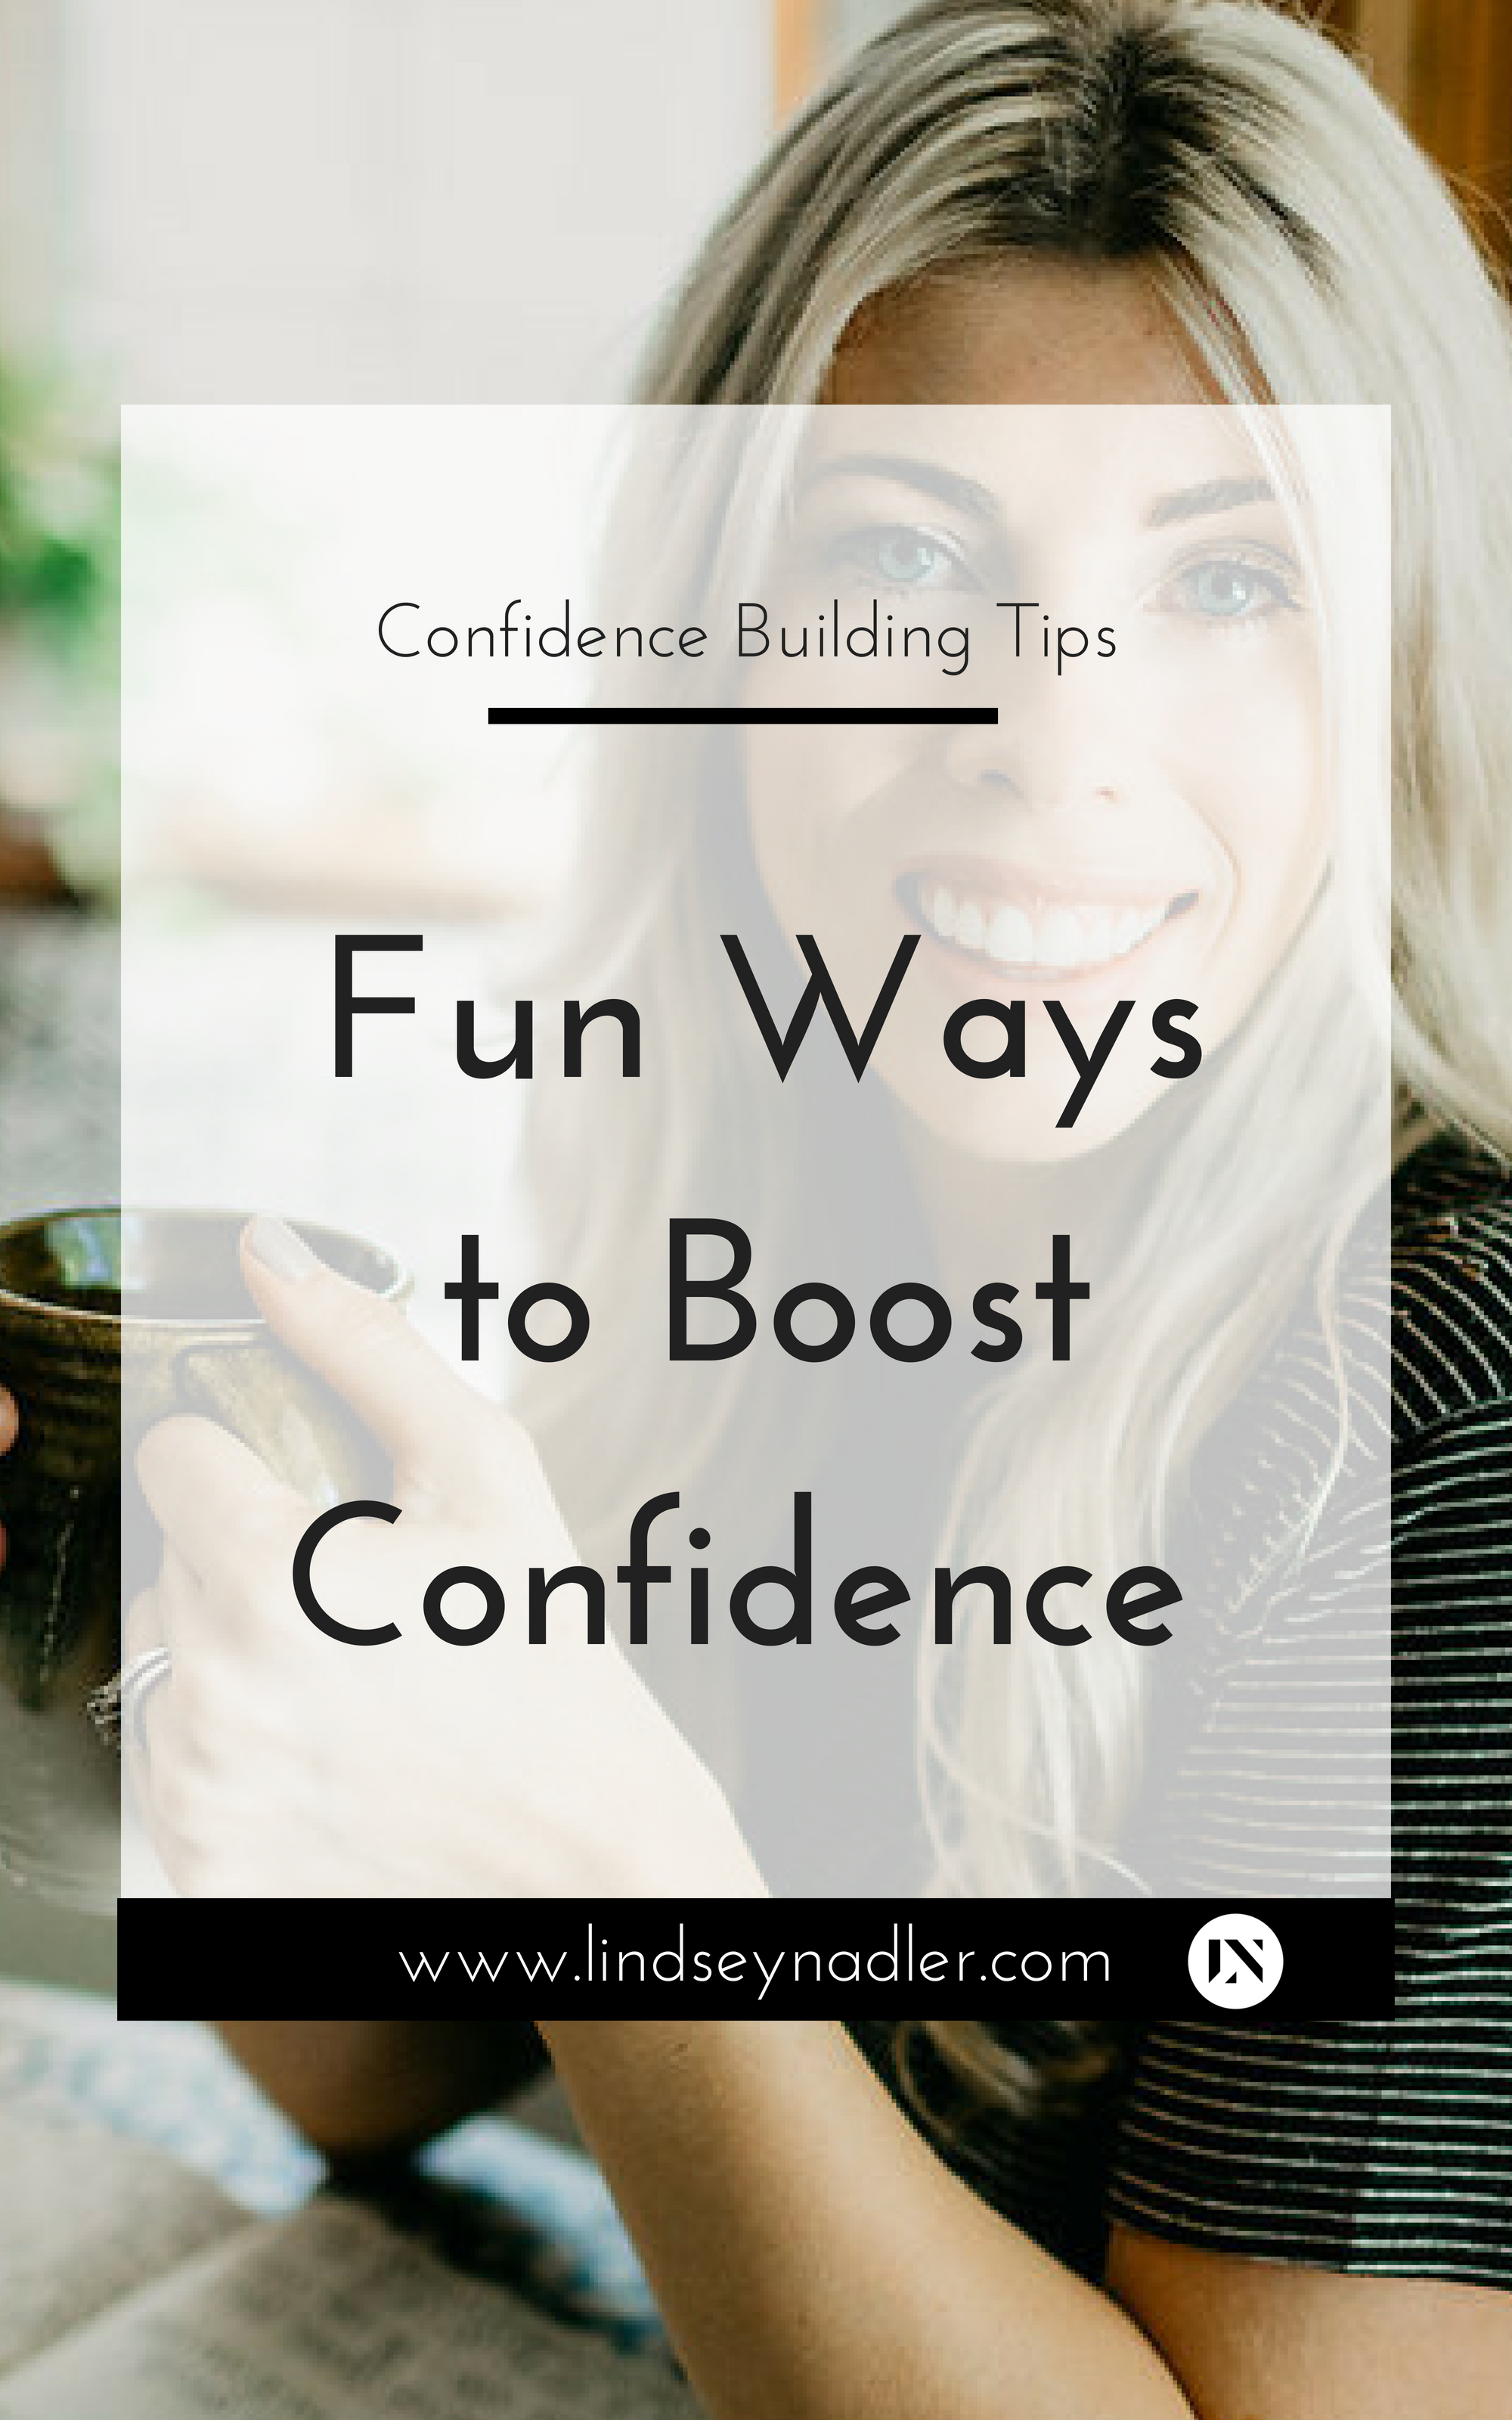 Fun Ways to Boost Confidence